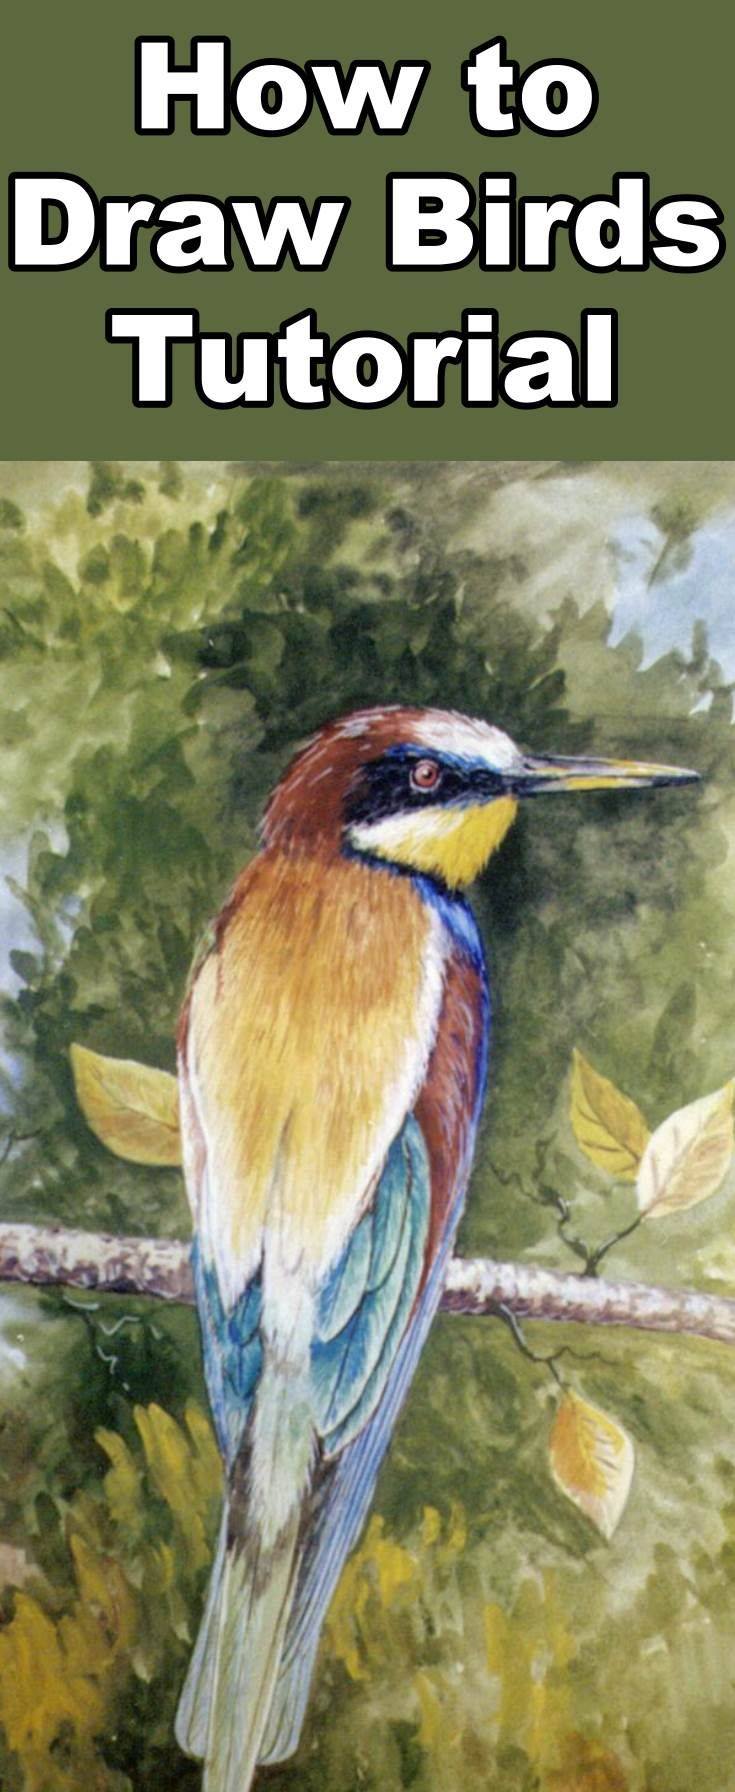 Learn how to draw birds with this pastel drawing lesson